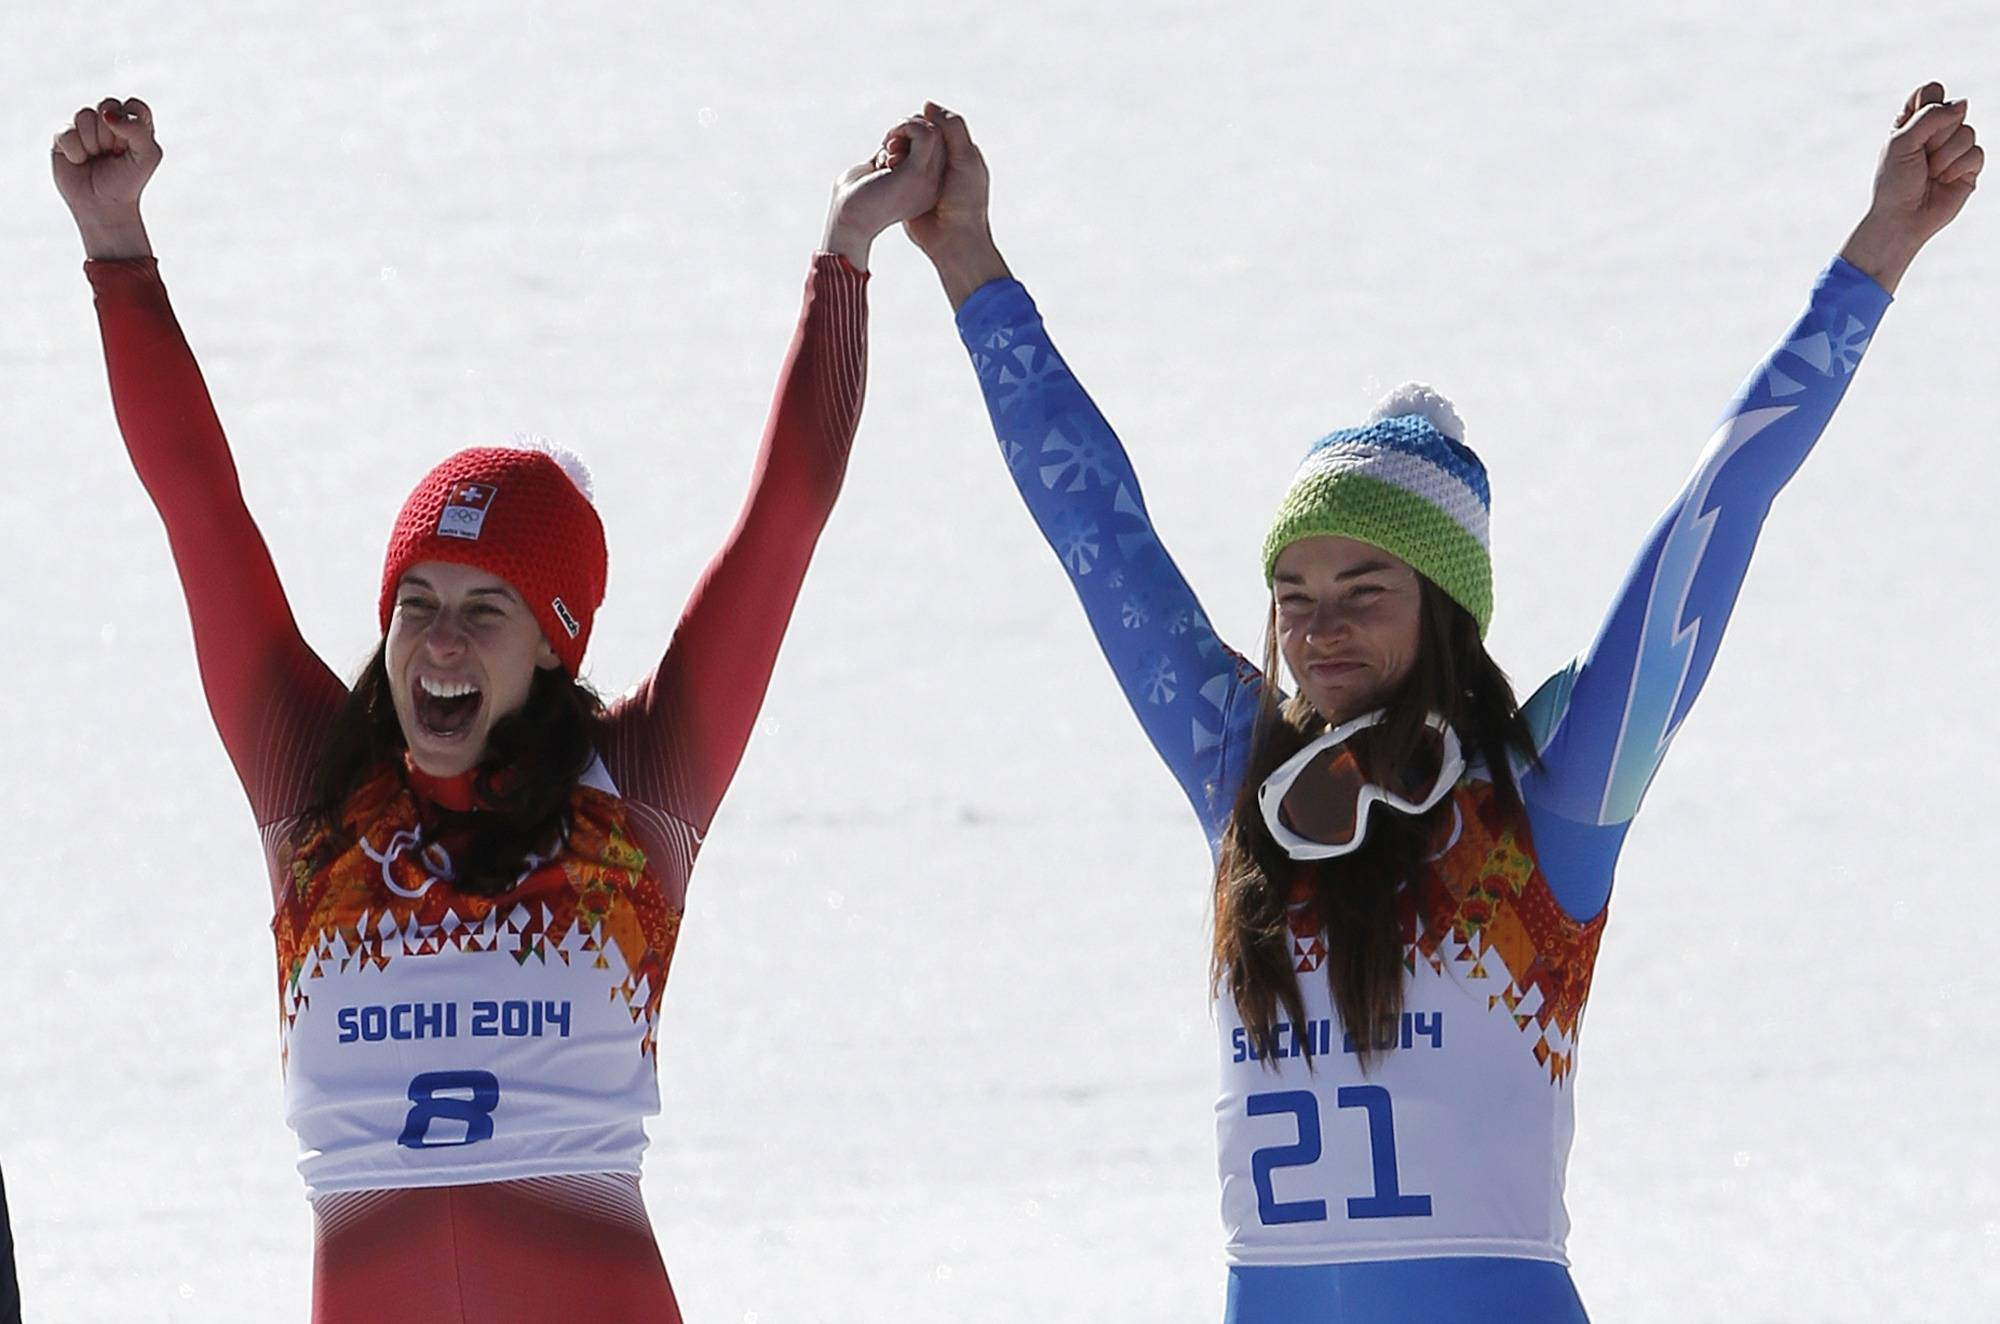 Women's downhill gold medalists Switzerland's Dominique Gisin, left, and Slovenia's Tina Maze, right, hold hands during a flower ceremony at the Sochi 2014 Winter Olympics, Wednesday, Feb. 12, 2014, in Krasnaya Polyana, Russia.